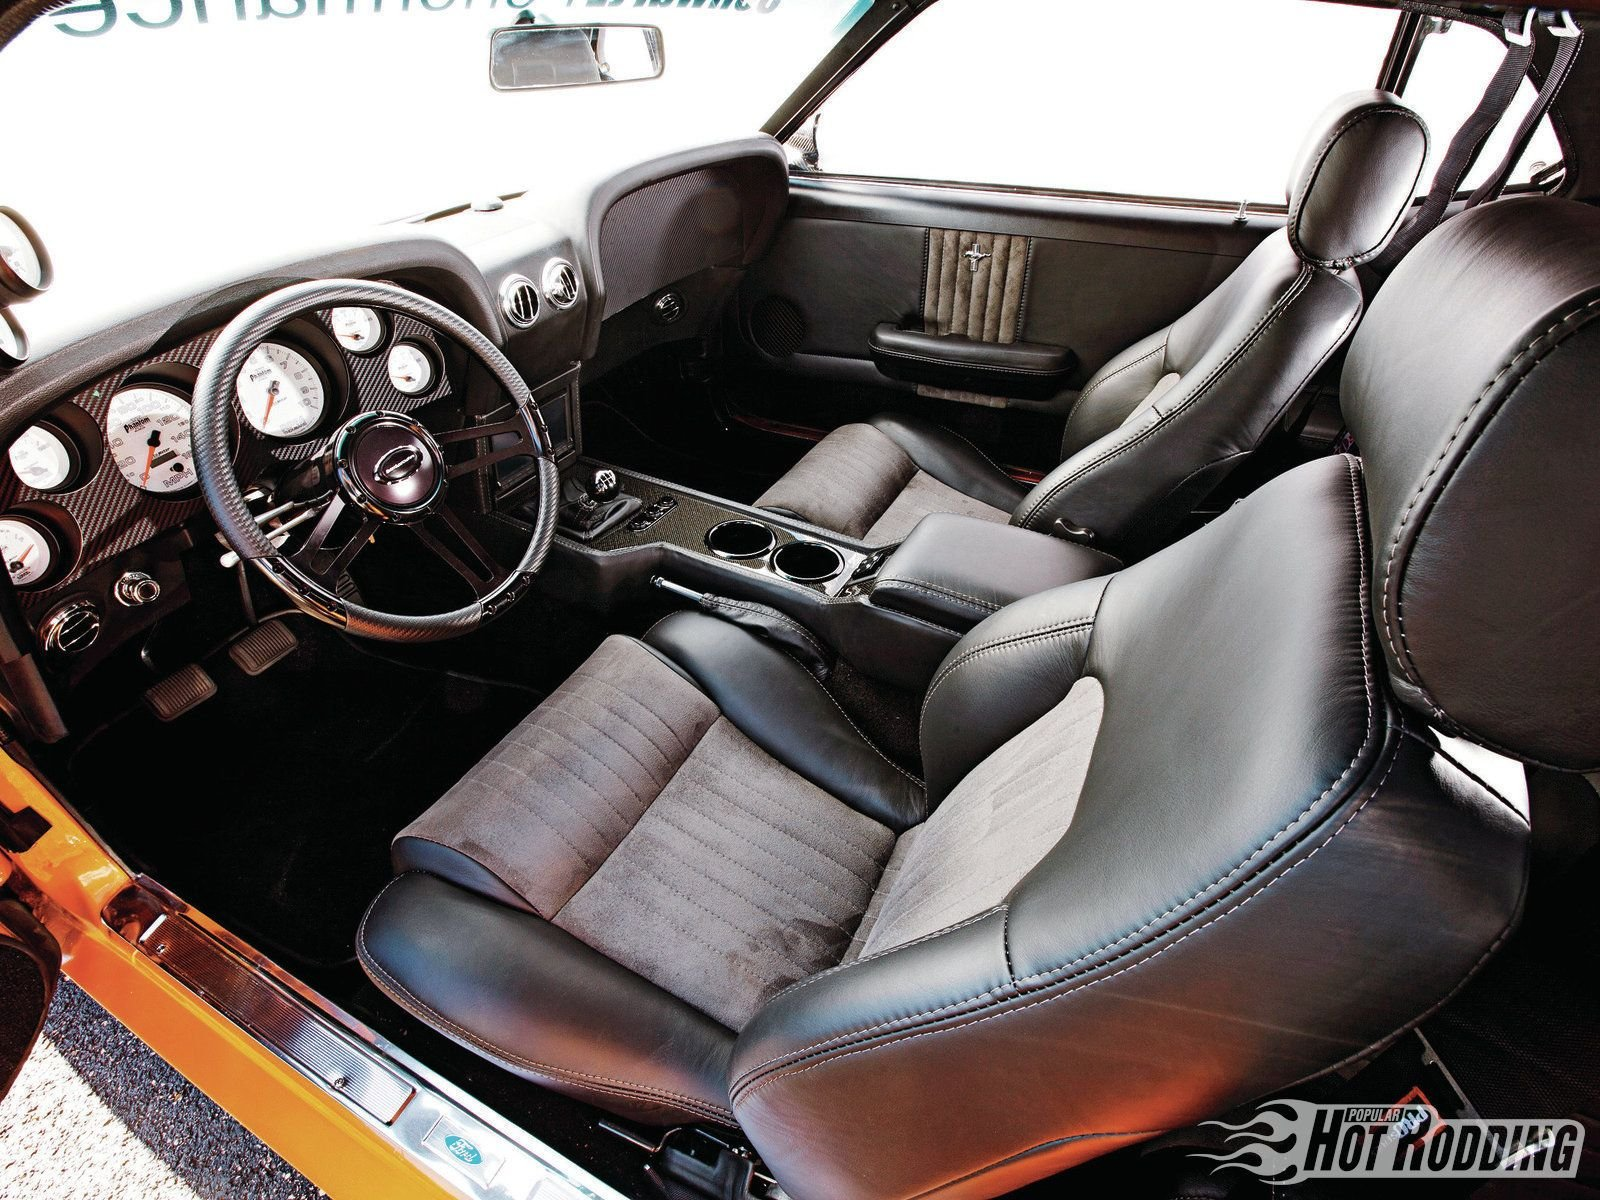 1969 ford mustang coupe pro touring cars classic wallpaper 1600x1200 662504 wallpaperup - 1969 Ford Mustang Interior